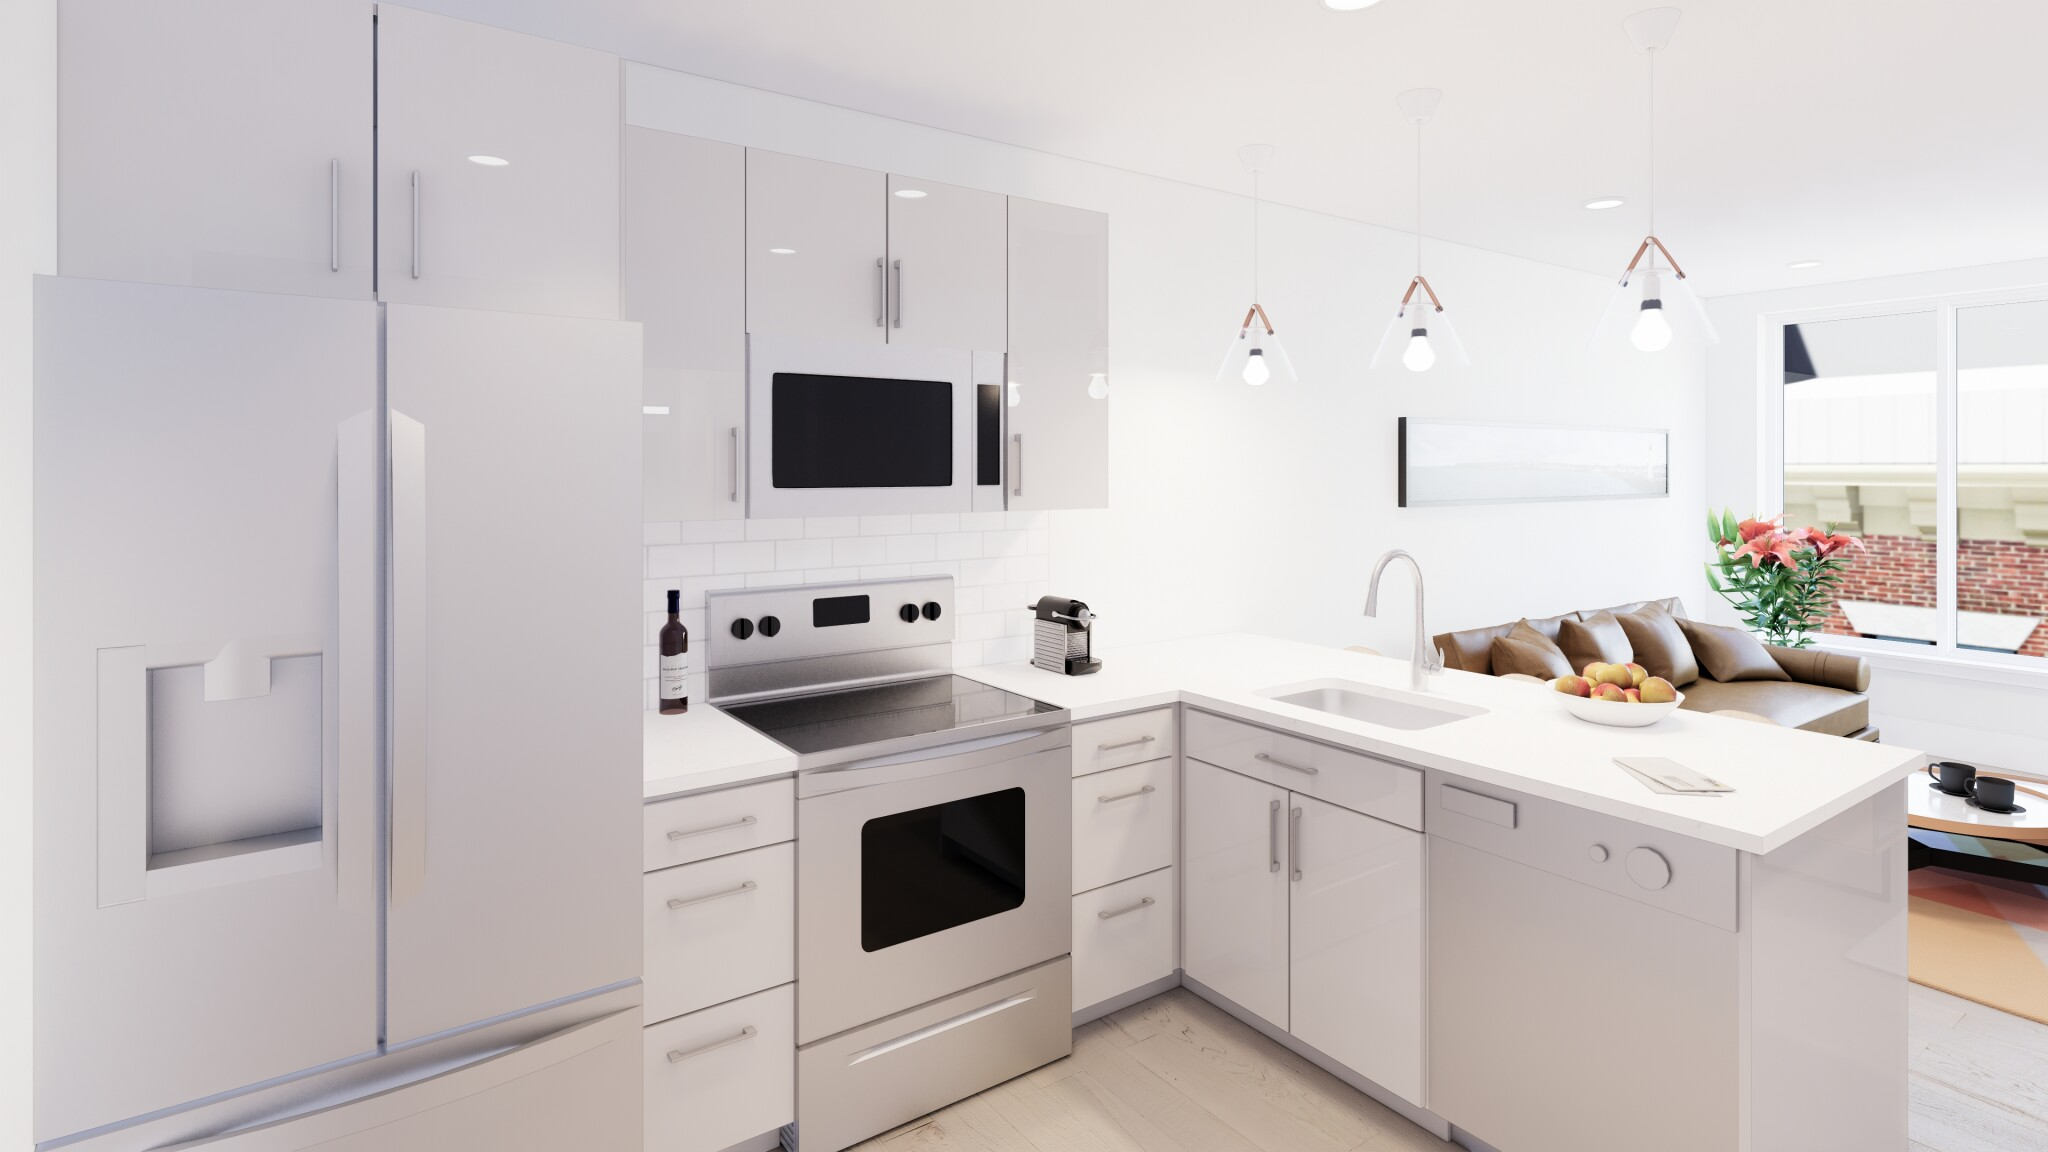 1 Bed, 1 Bath apartment in Boston for $2,500